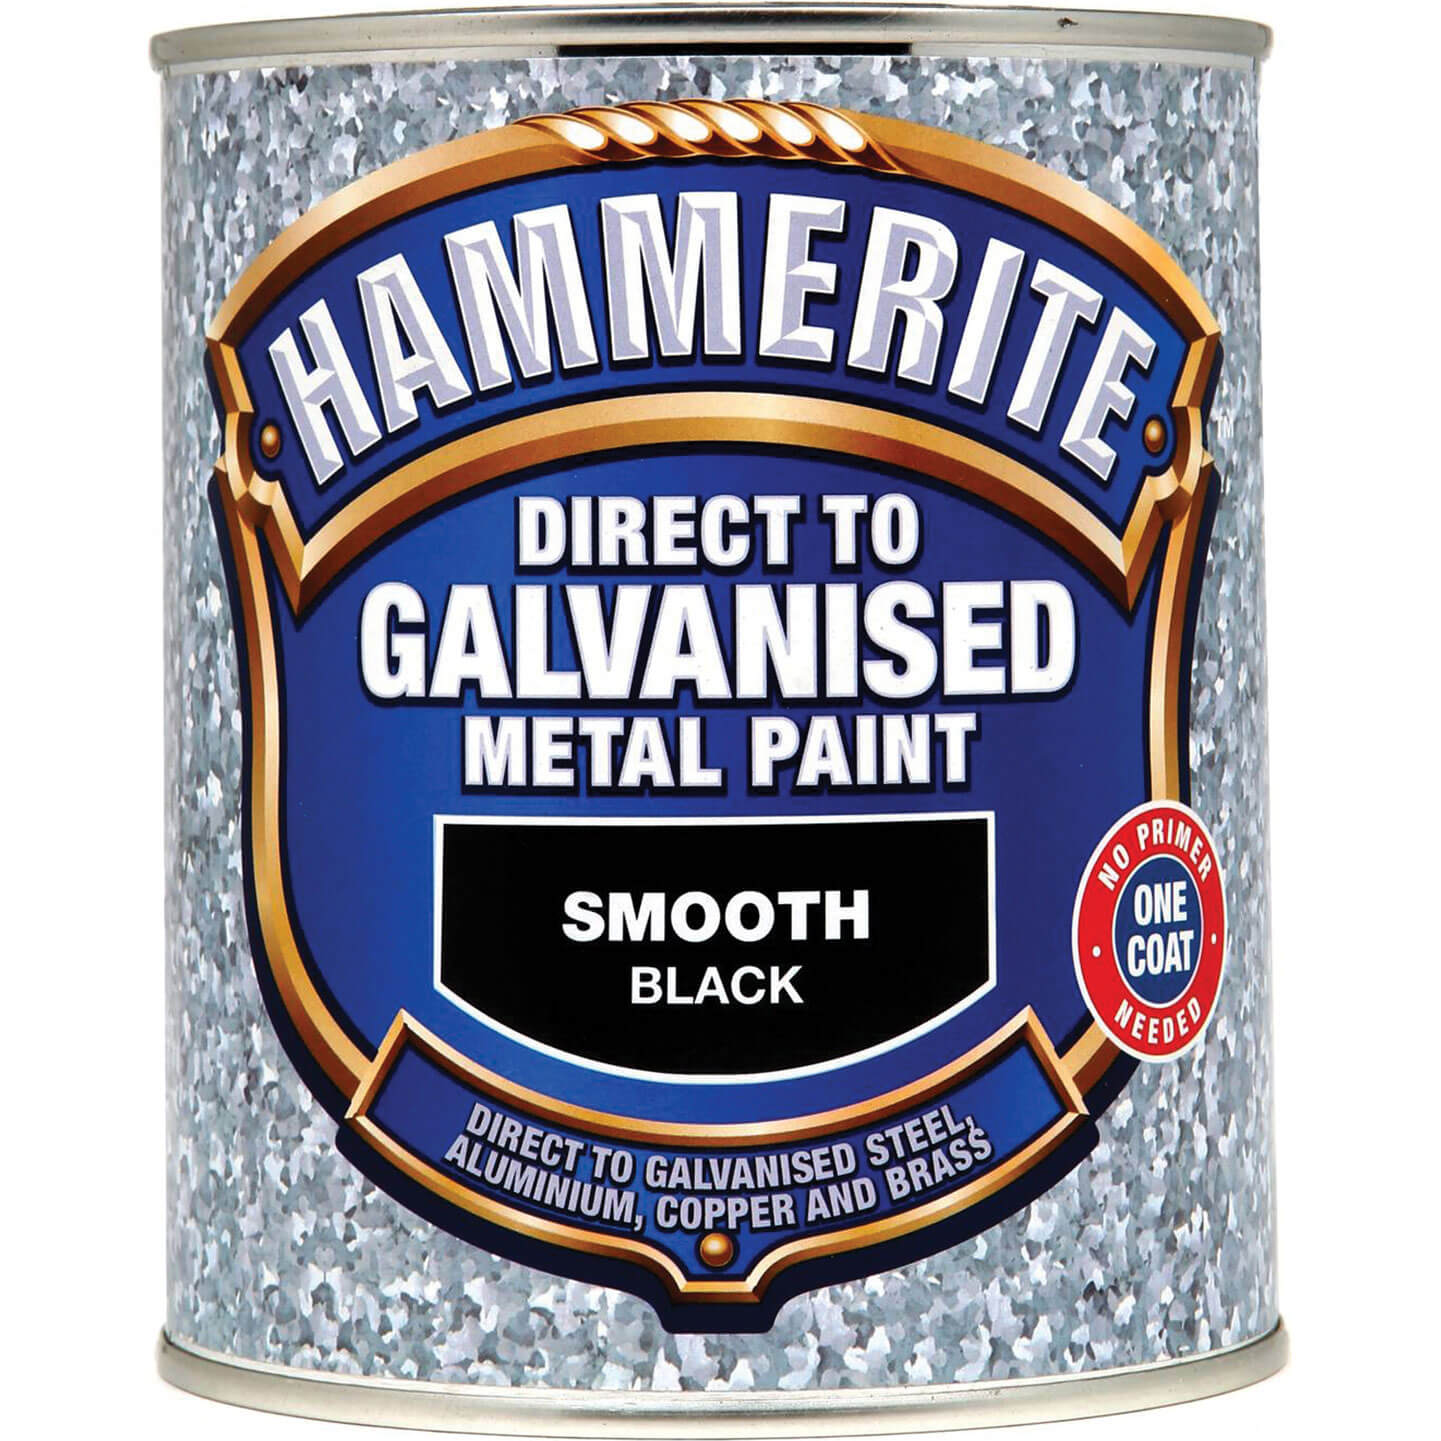 Image of Hammerite Direct to Galvanised Metal Paint Black 750ml